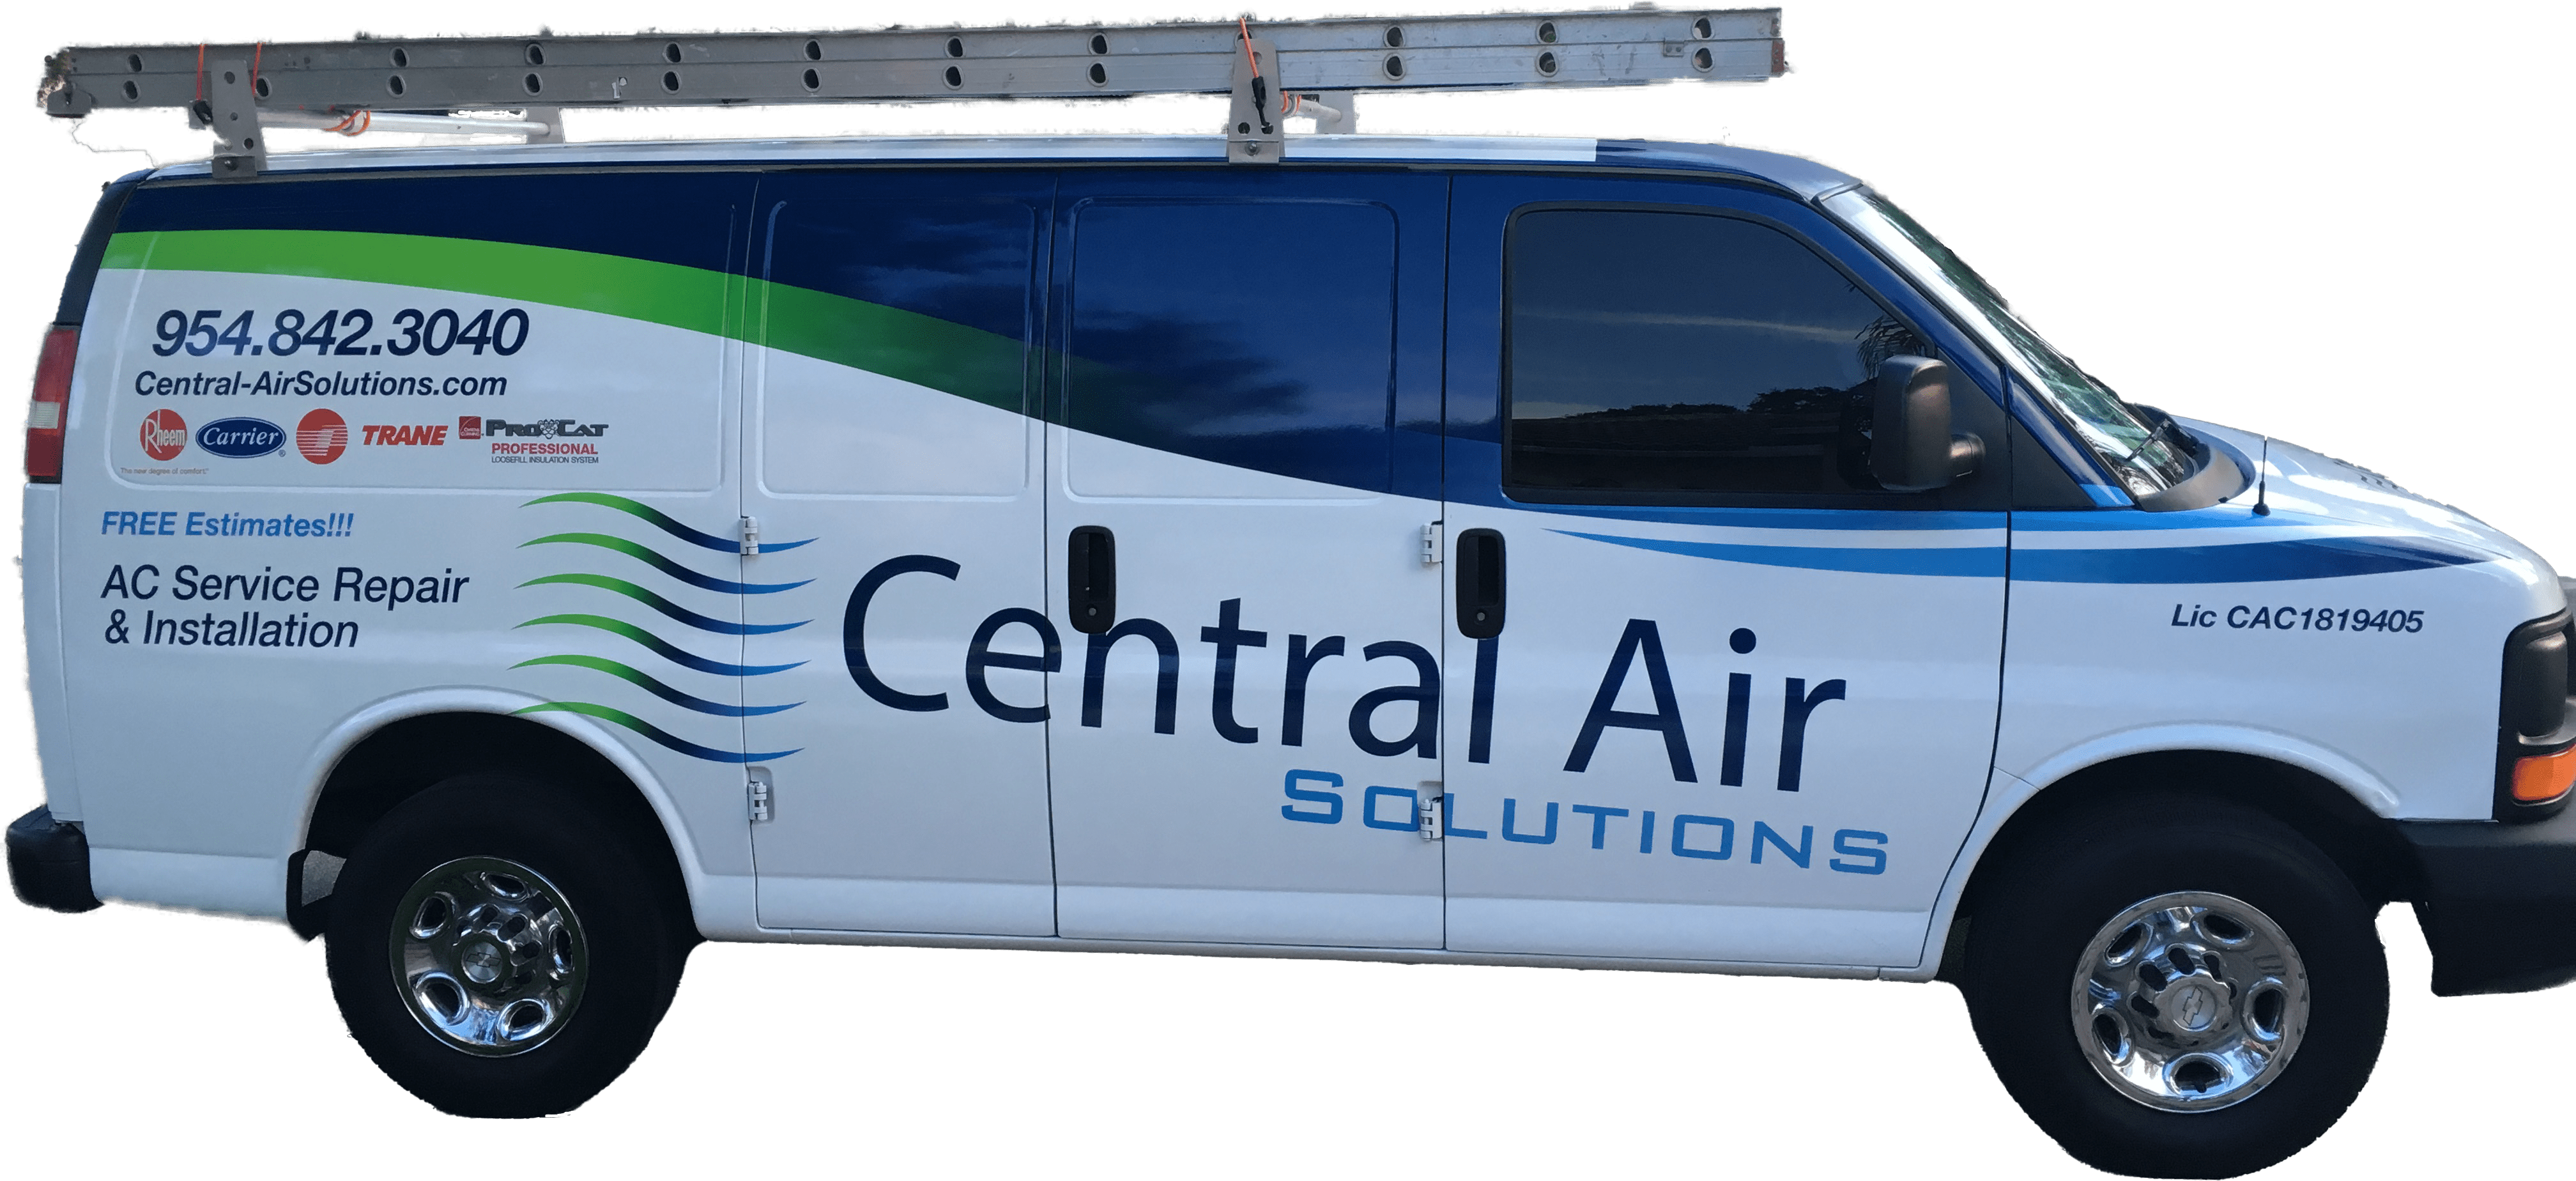 Central Air Solutions